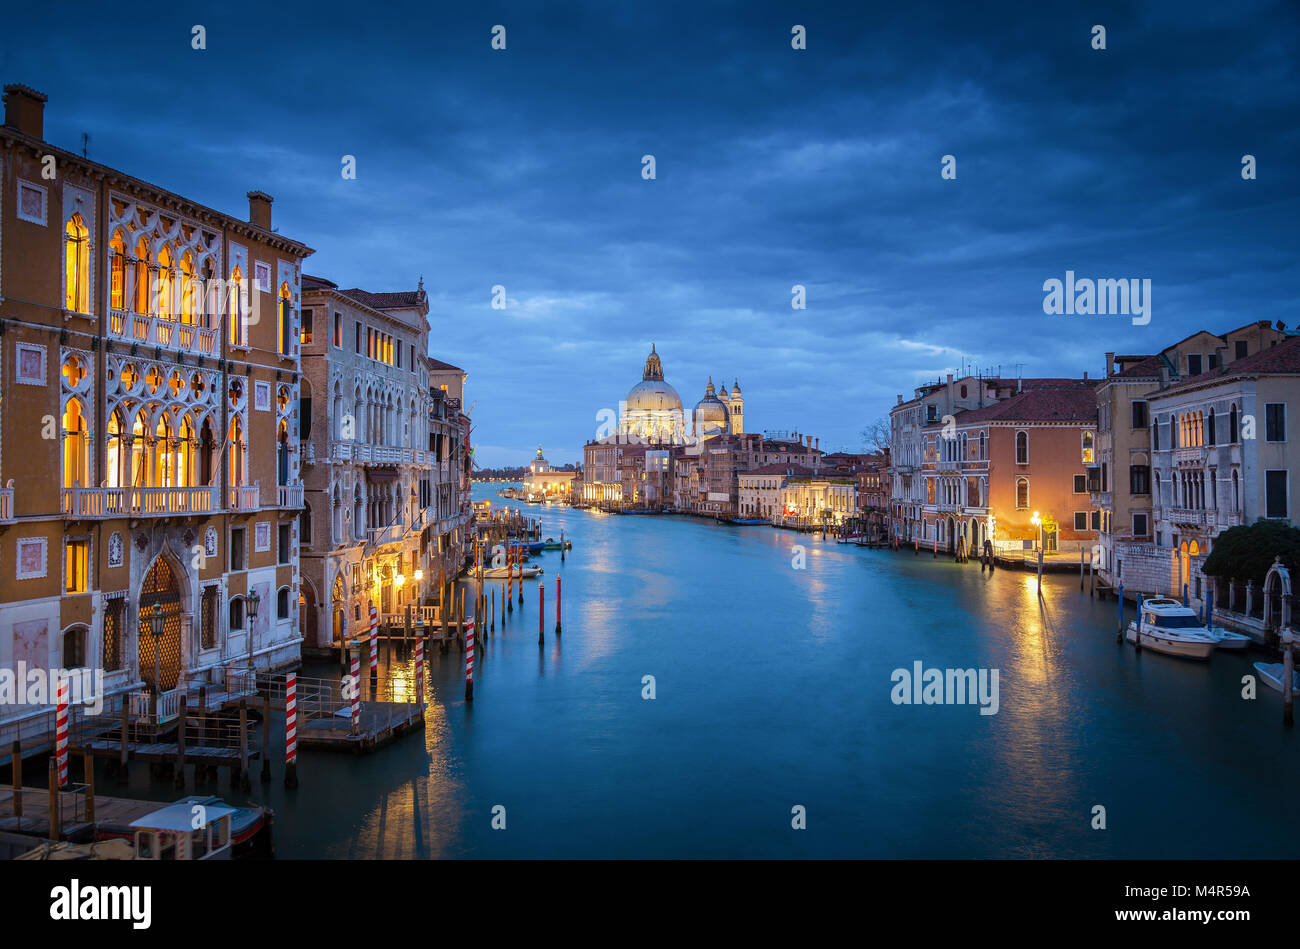 Classic view of famous Canal Grande with historic Basilica di Santa Maria della Salute in the background in twilight, - Stock Image